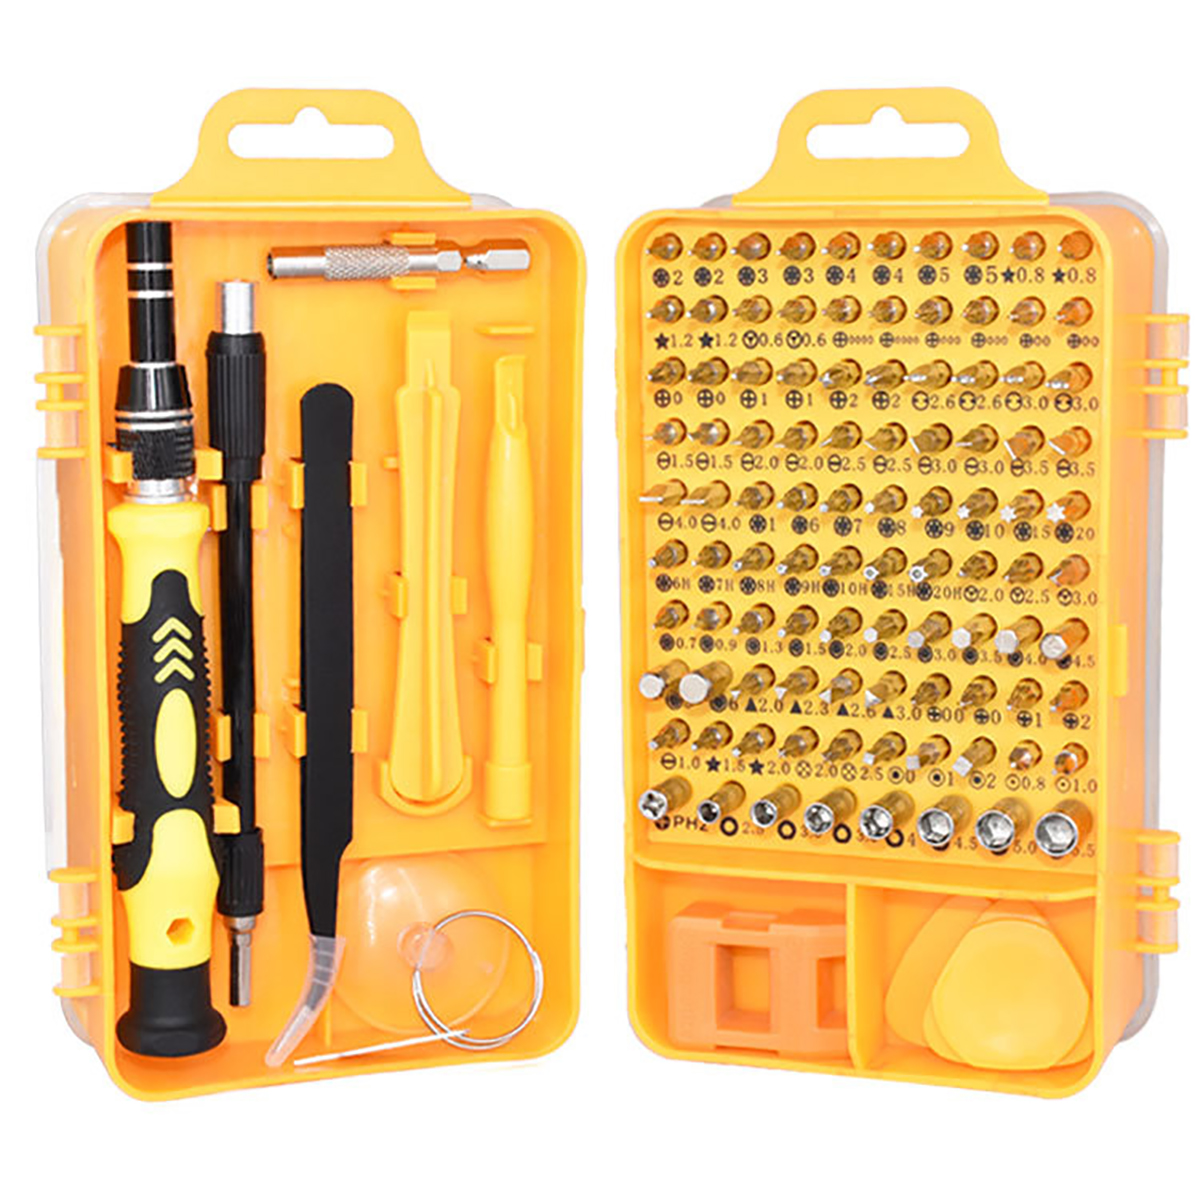 115 In 1 Precision Screwdriver Repair Tool For Smart Phone Tablet PC Computer Watch